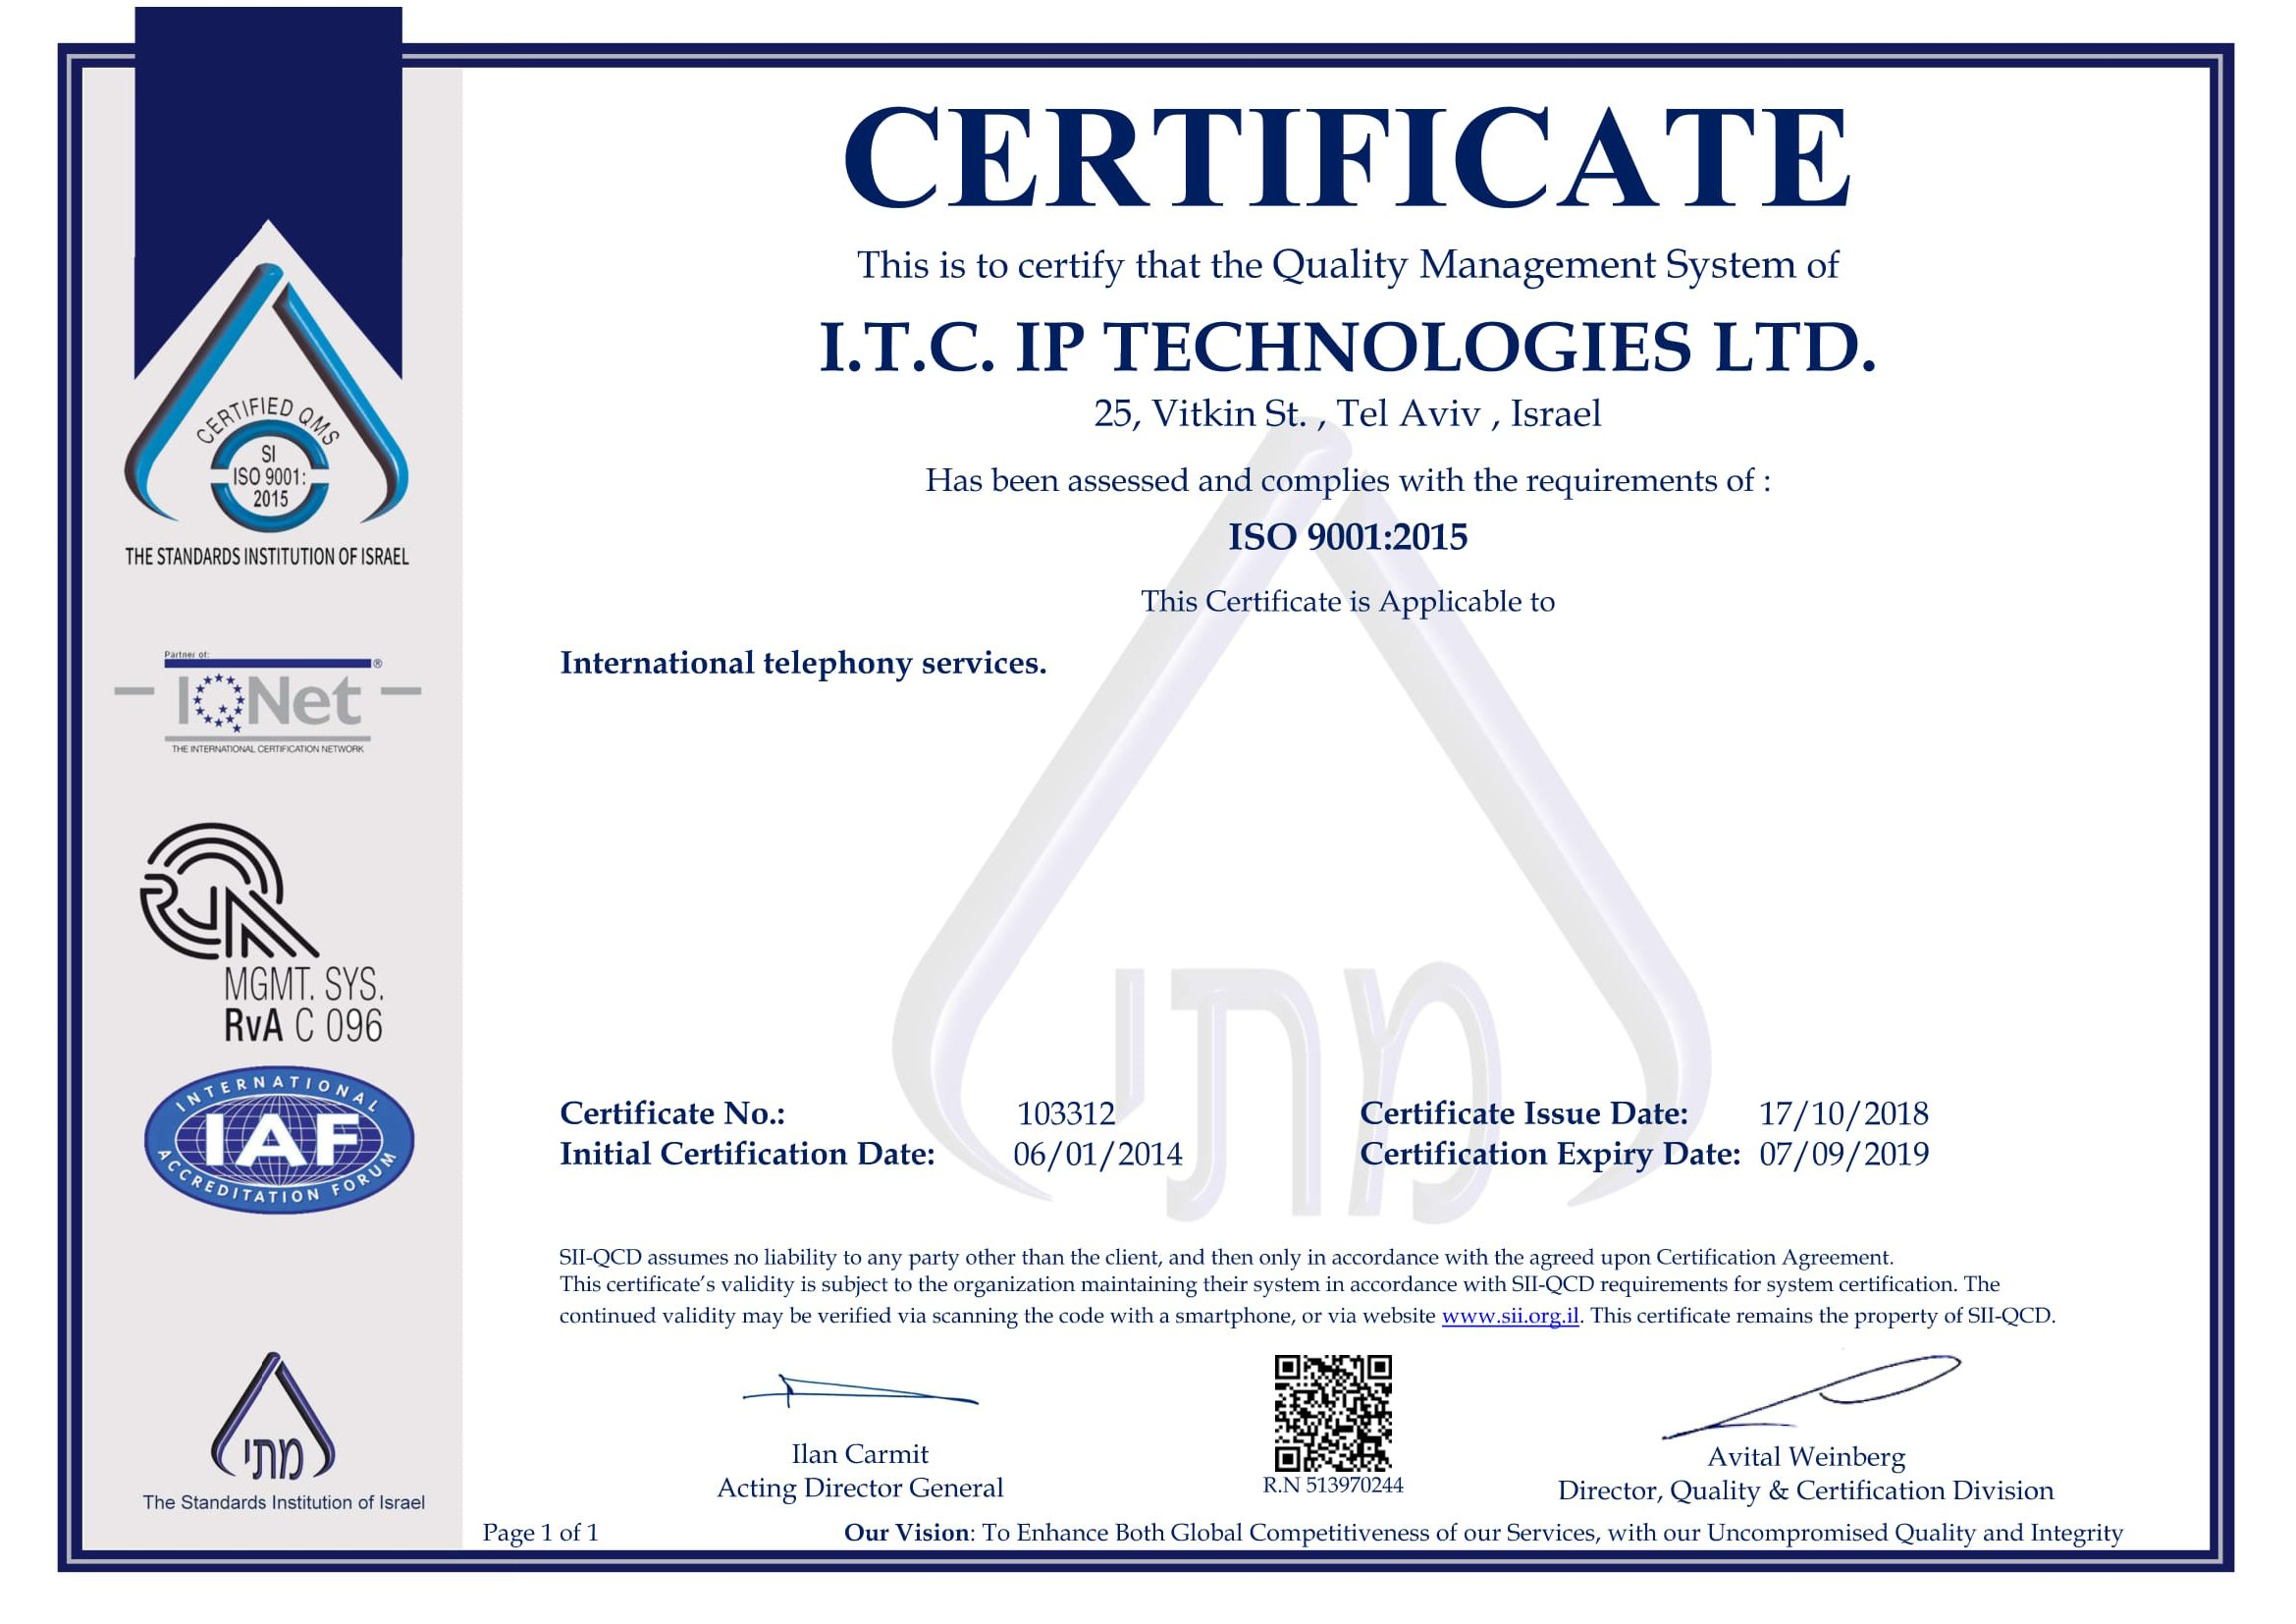 ITC Certificate ISO9000